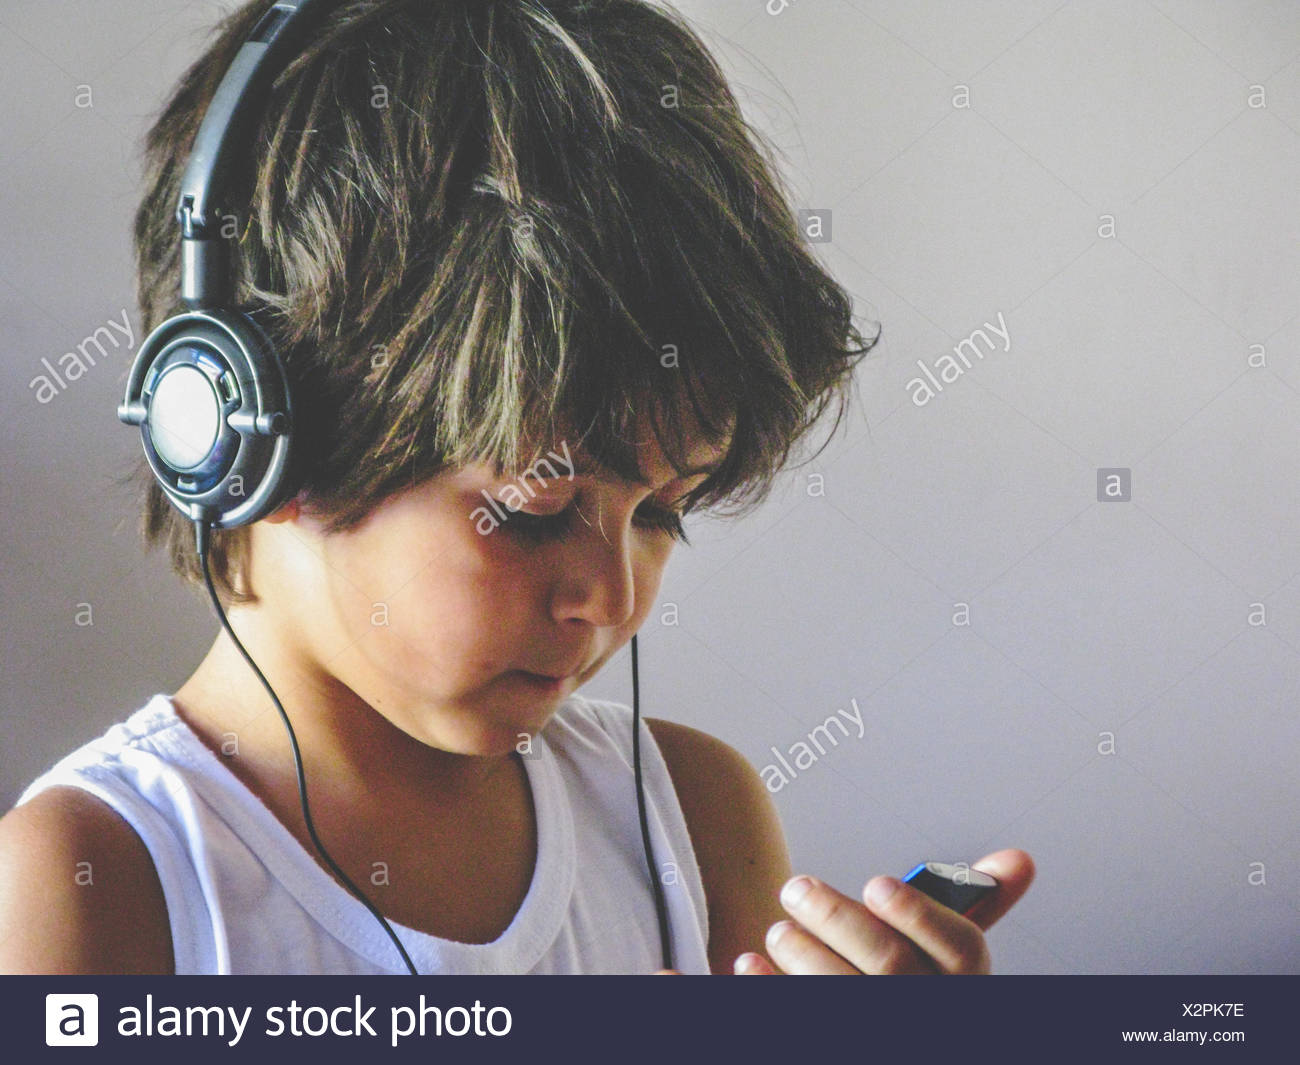 Boy wearing headphones and using mp3 player - Stock Image